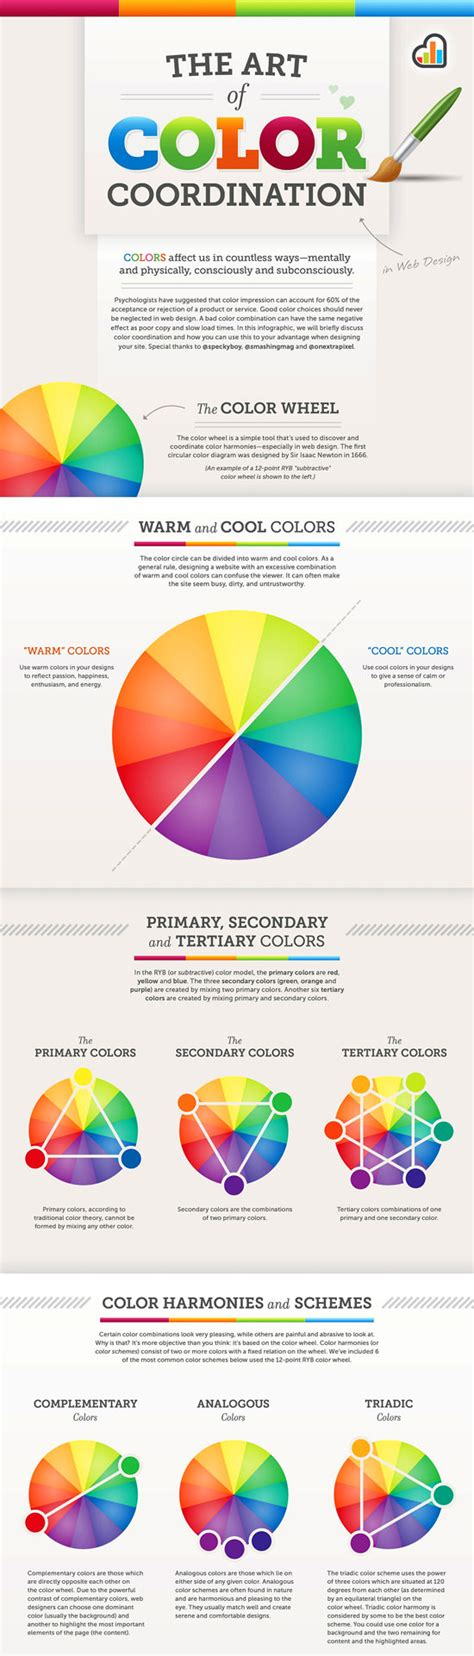 color designer the art of color coordination everything colo